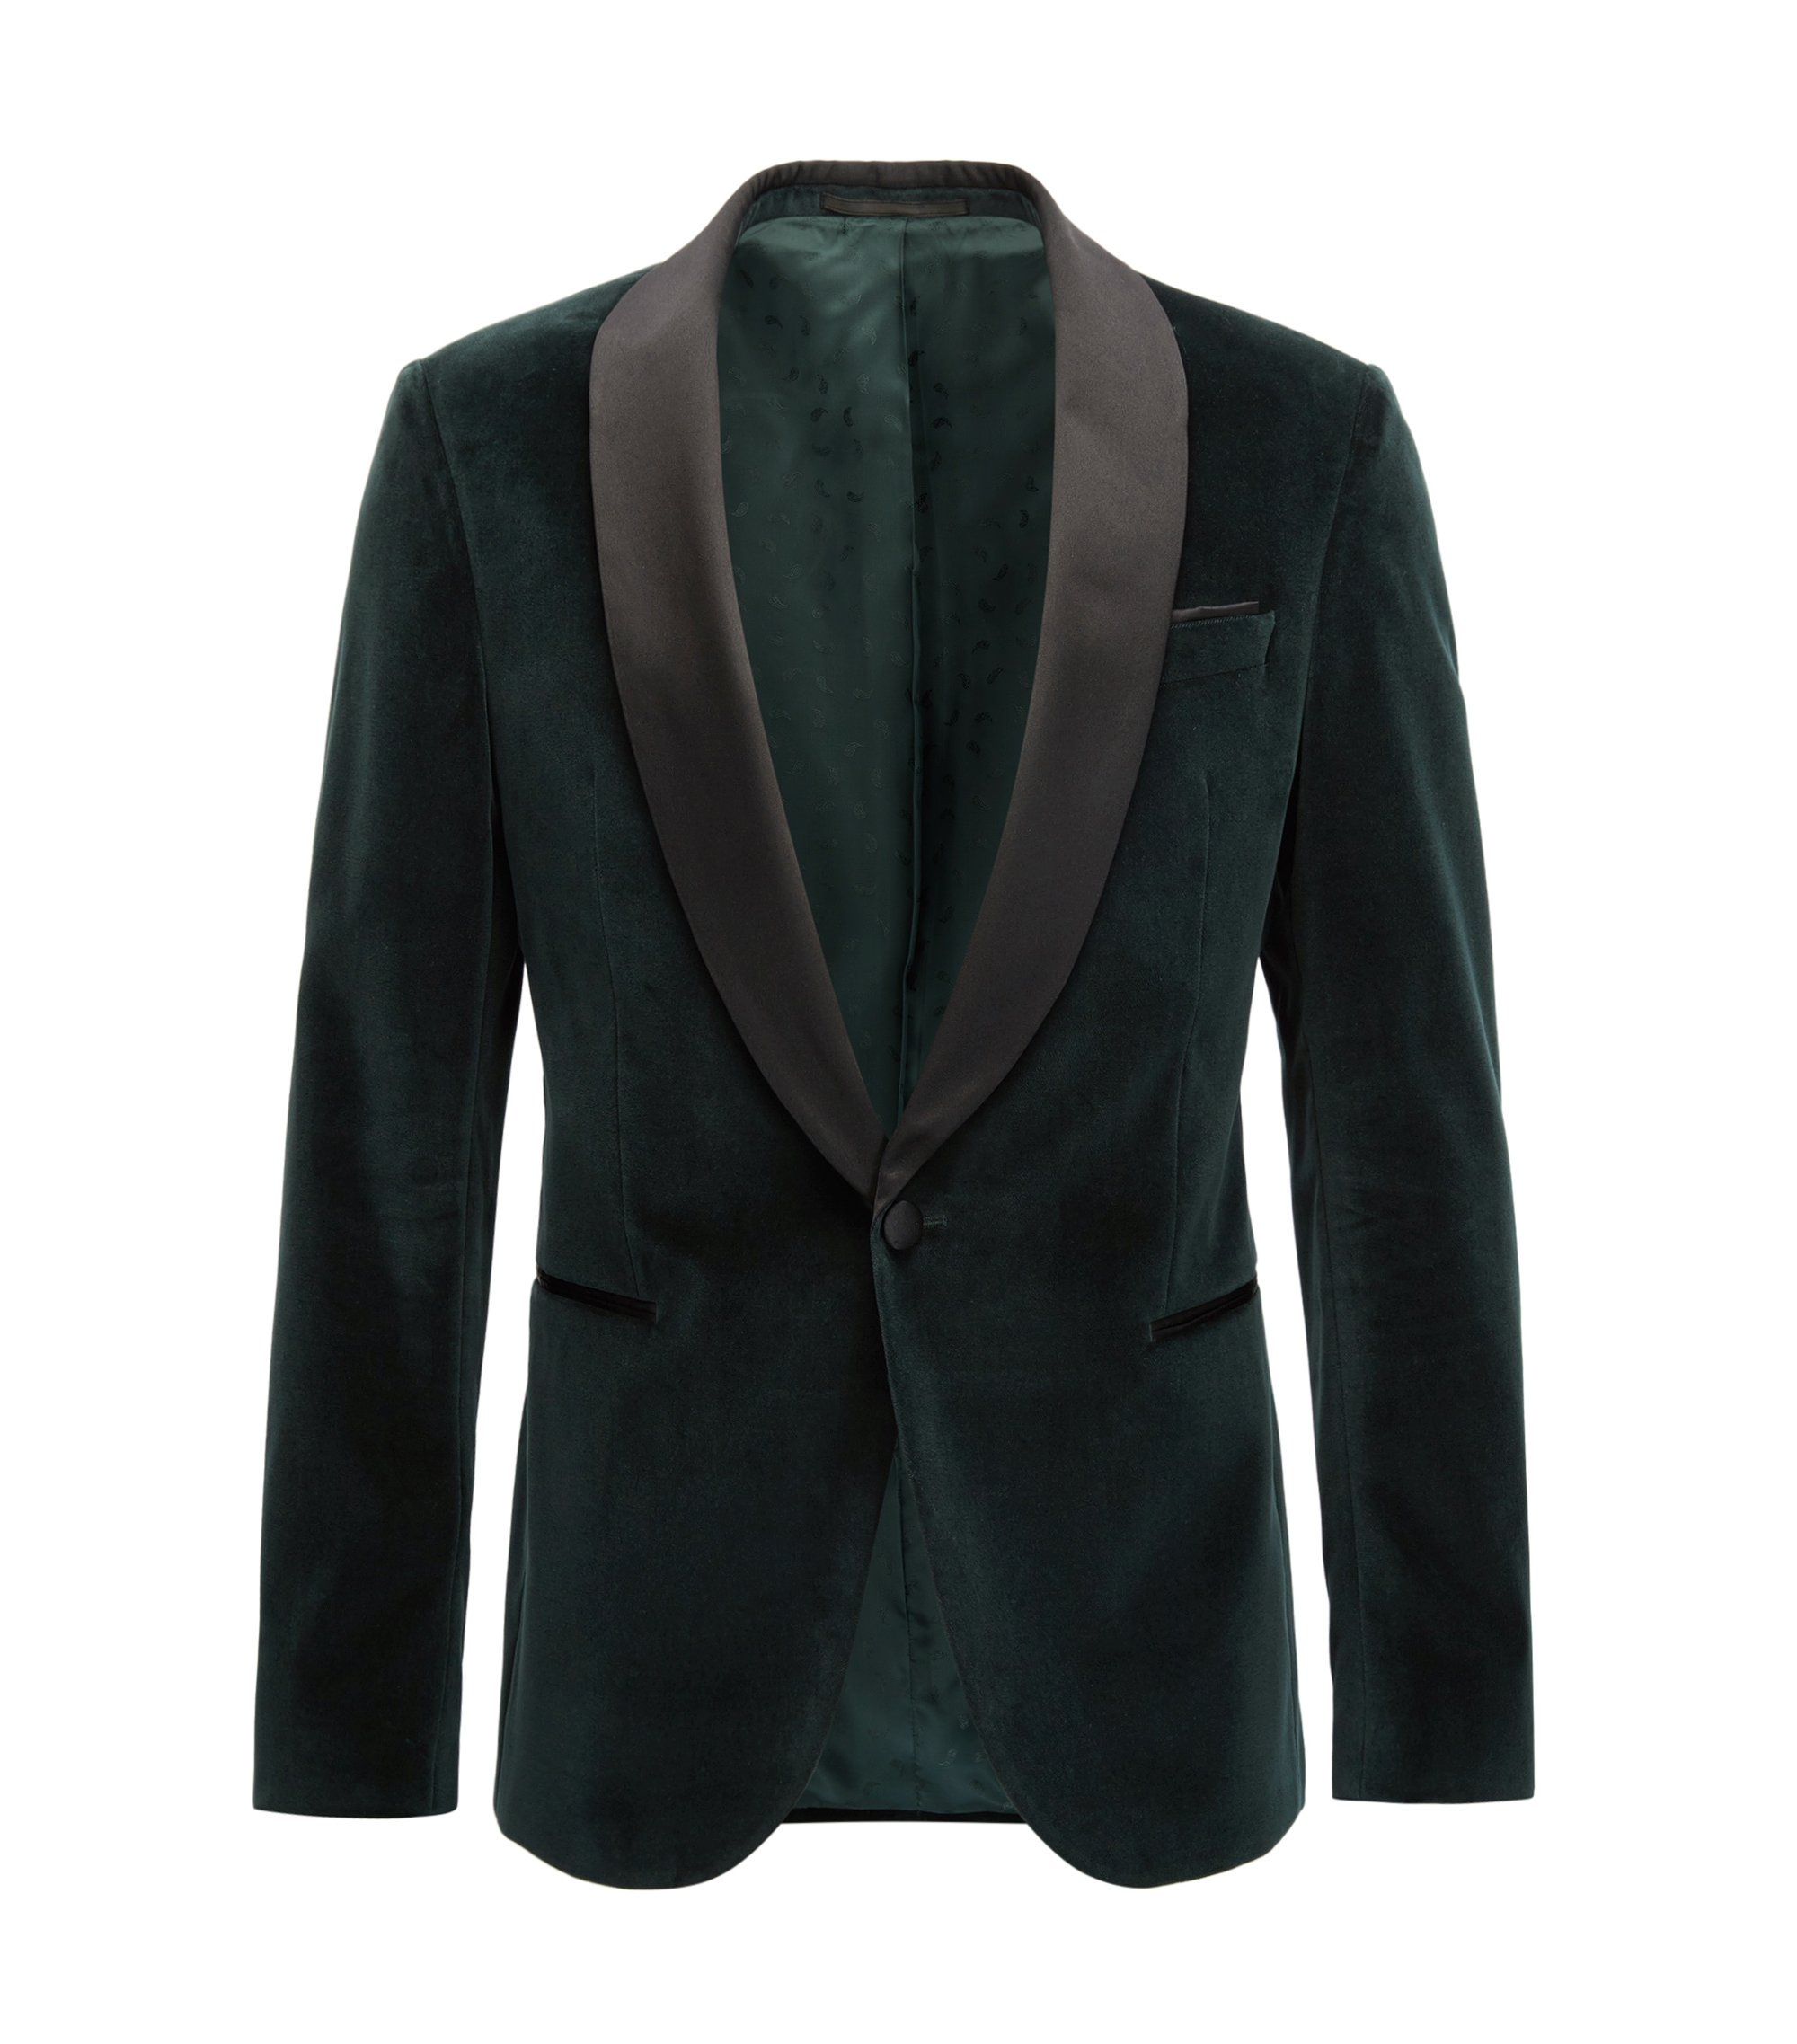 Veste de smoking Slim Fit en velours à revers en soie, Vert sombre